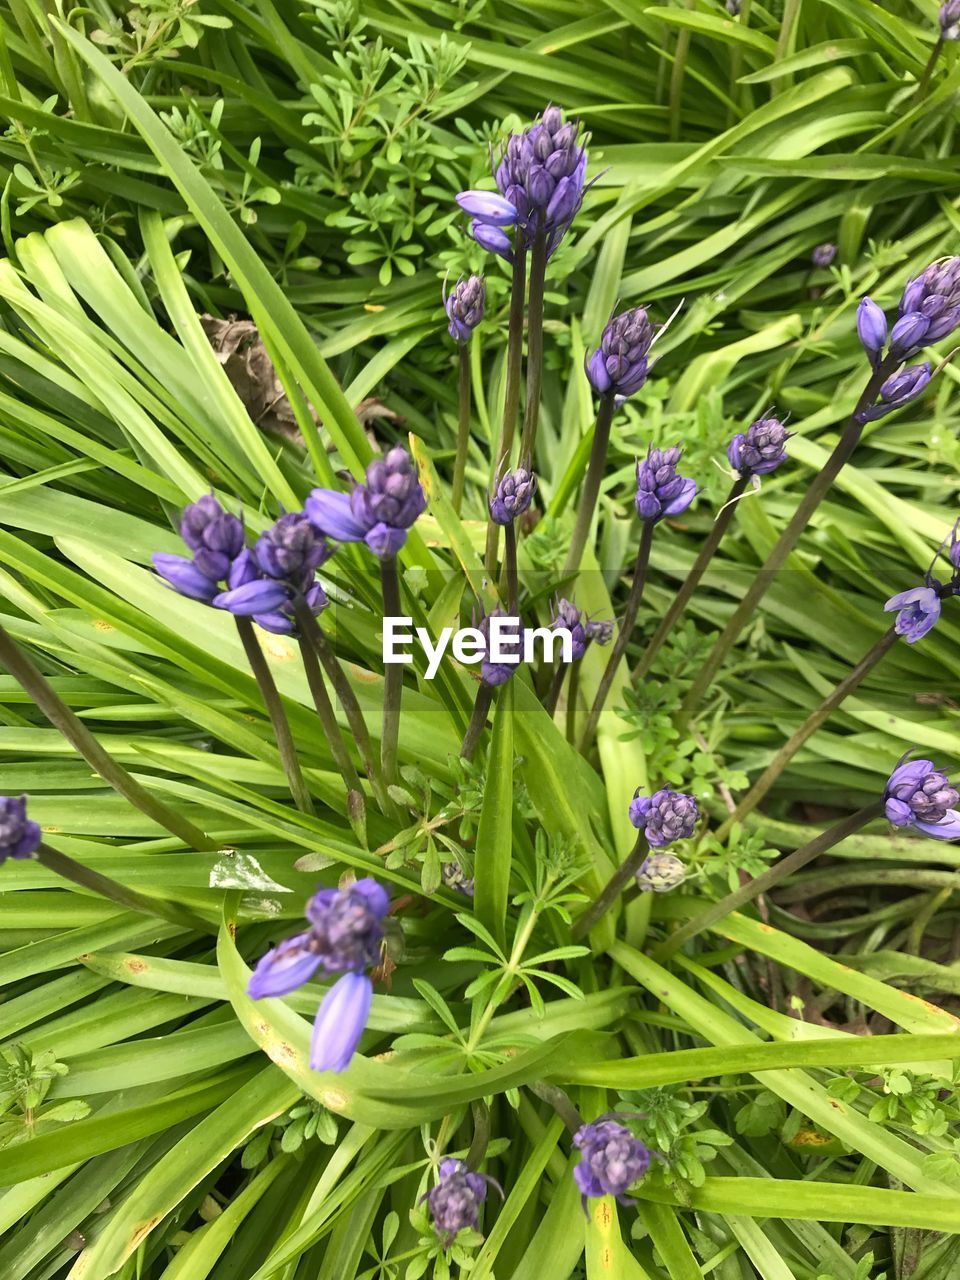 flower, flowering plant, plant, purple, beauty in nature, growth, freshness, vulnerability, fragility, green color, close-up, nature, no people, day, leaf, plant part, petal, full frame, high angle view, botany, outdoors, flower head, flowerbed